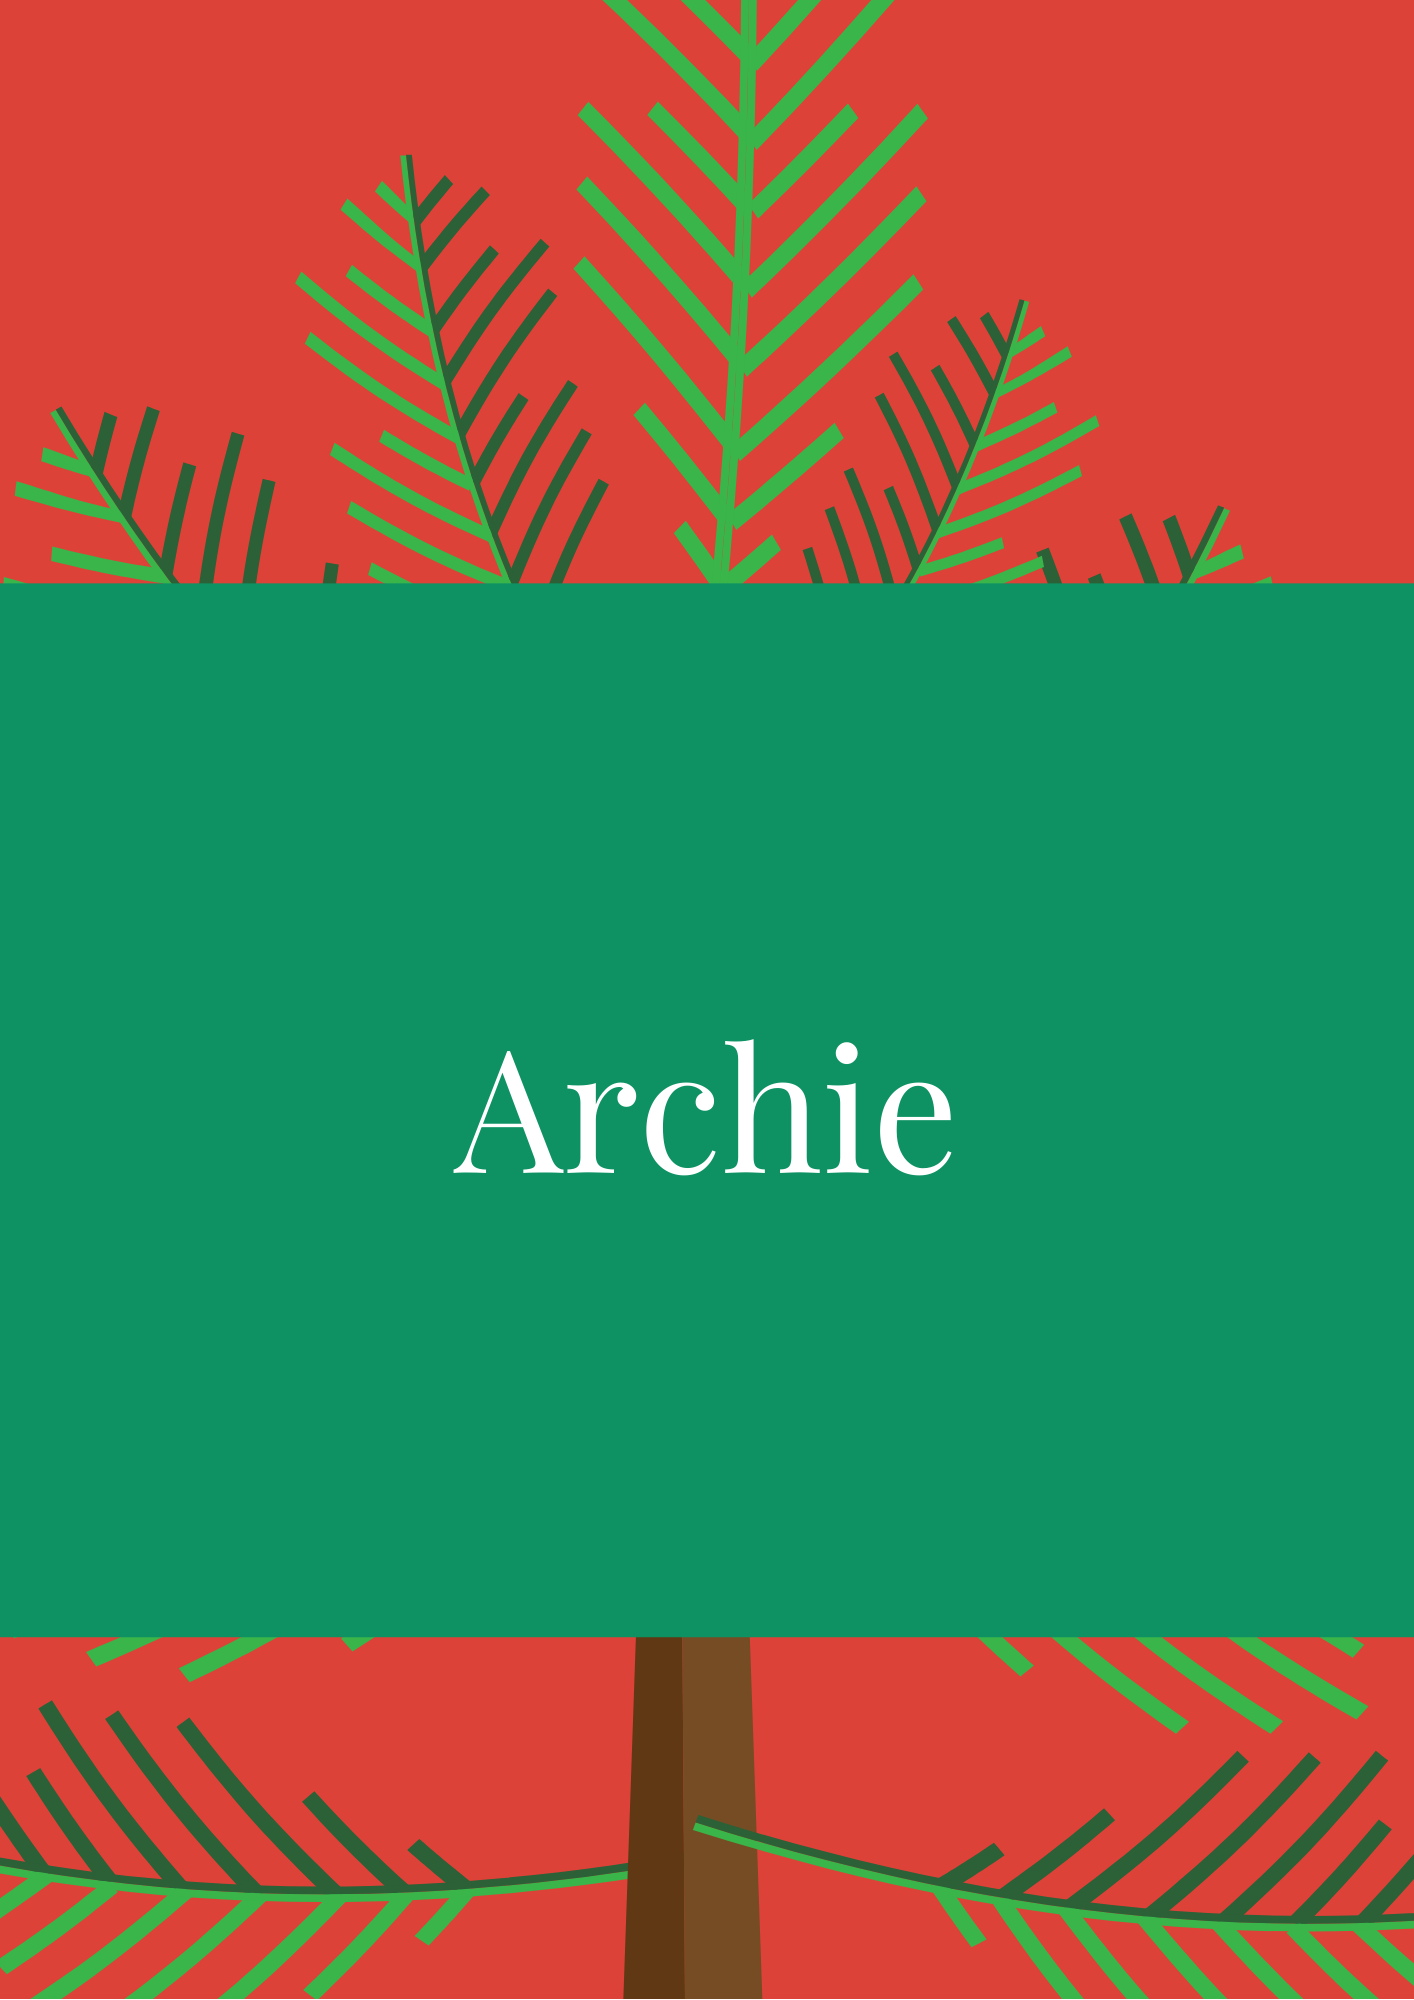 Archie Elf Names